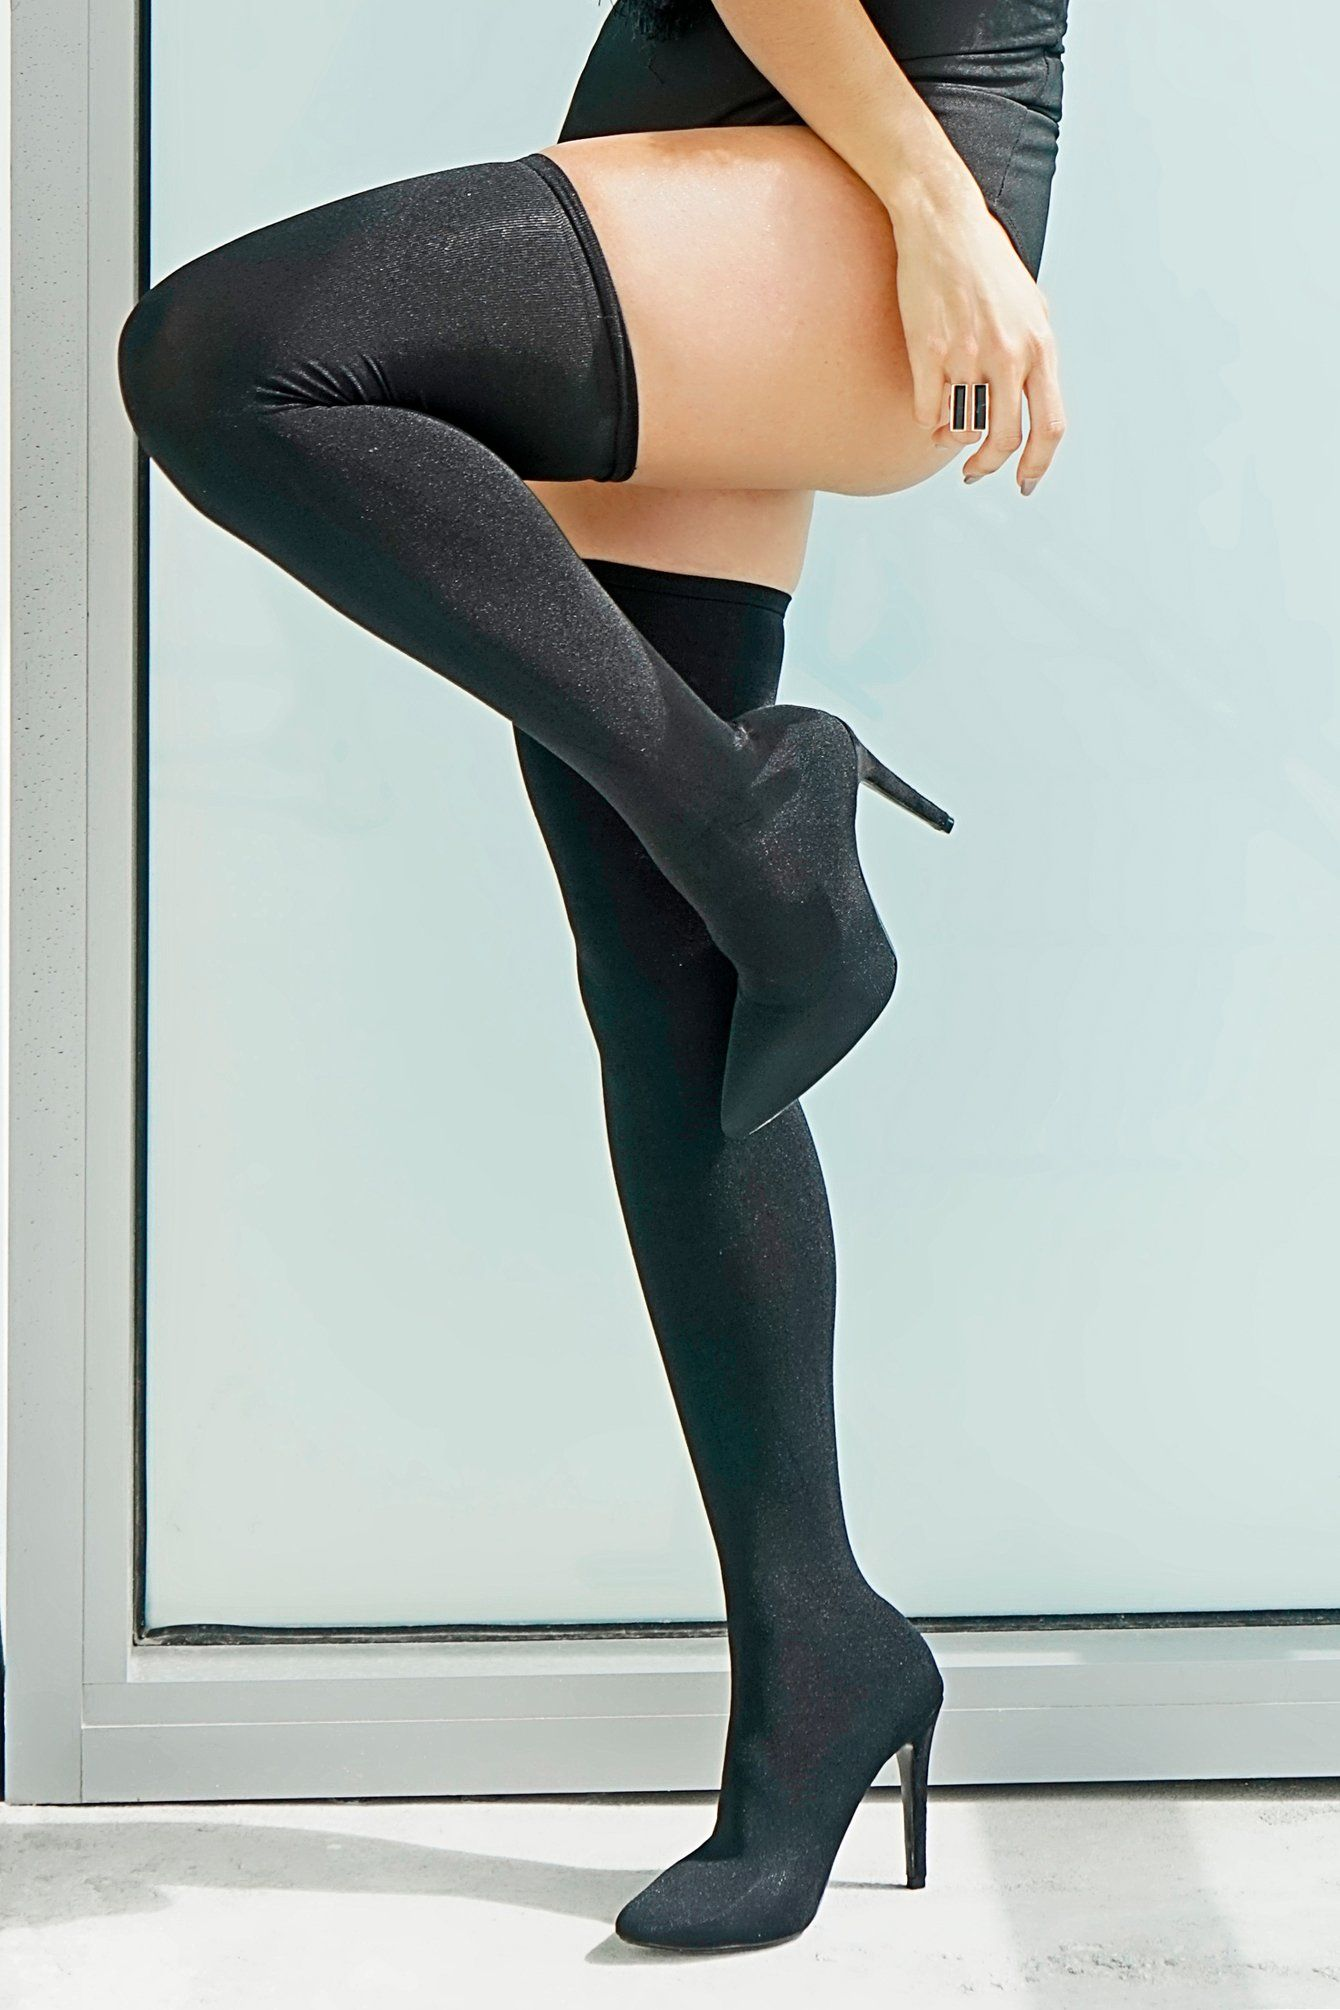 8bcff9d45f7 EDITOR S NOTES   DETAILS - Black stocking stretchy boots - Pointy toe - Thigh  high - 4.5 inch heel - Runs true to size